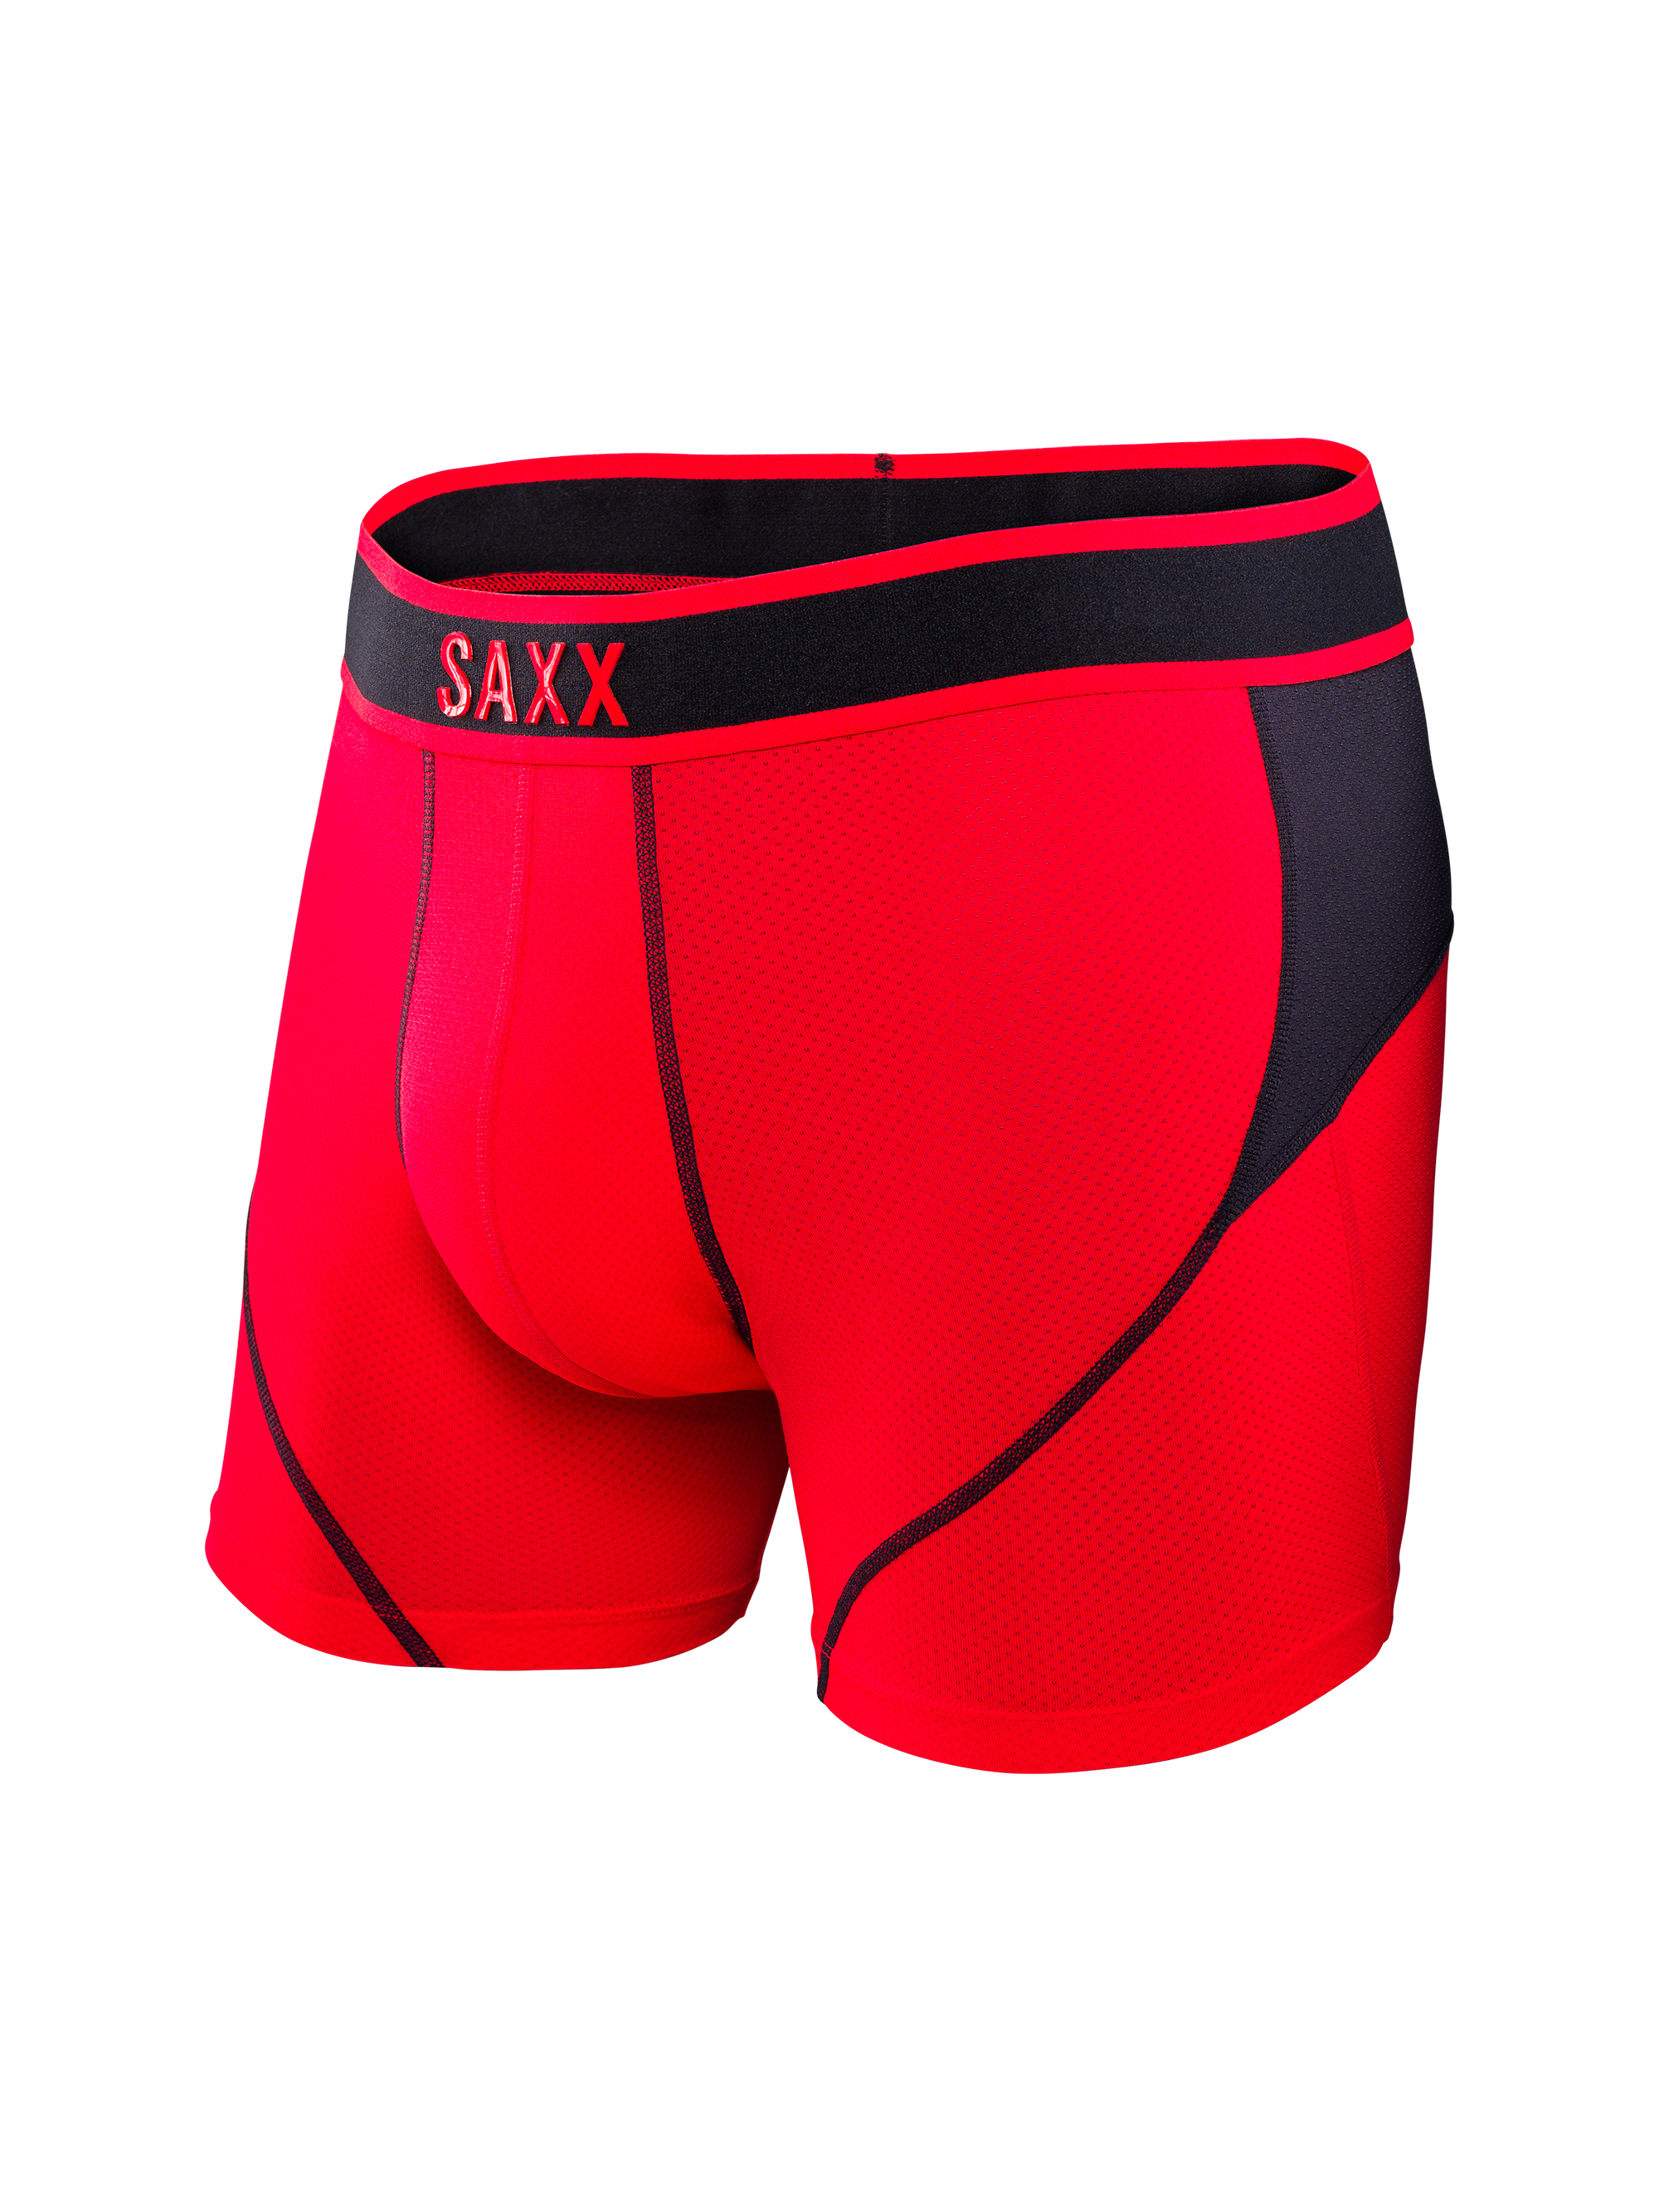 c4bded98ed7 SAXX Underwear Kinetic Performance Boxer